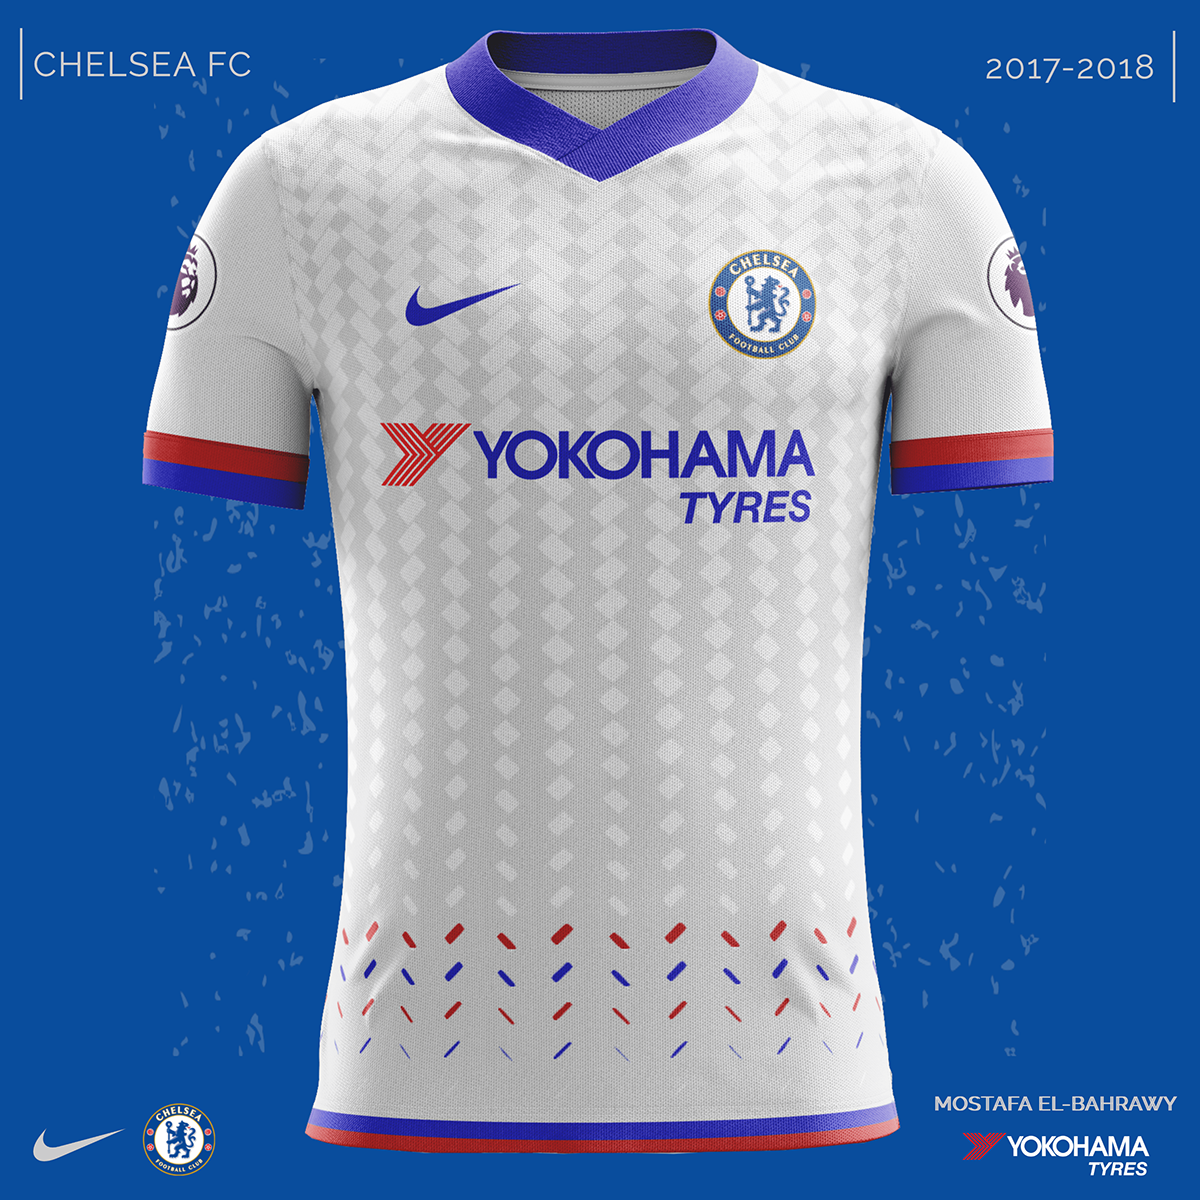 Chelsea Nike Kits (2017-2018) on Behance  656db415af236